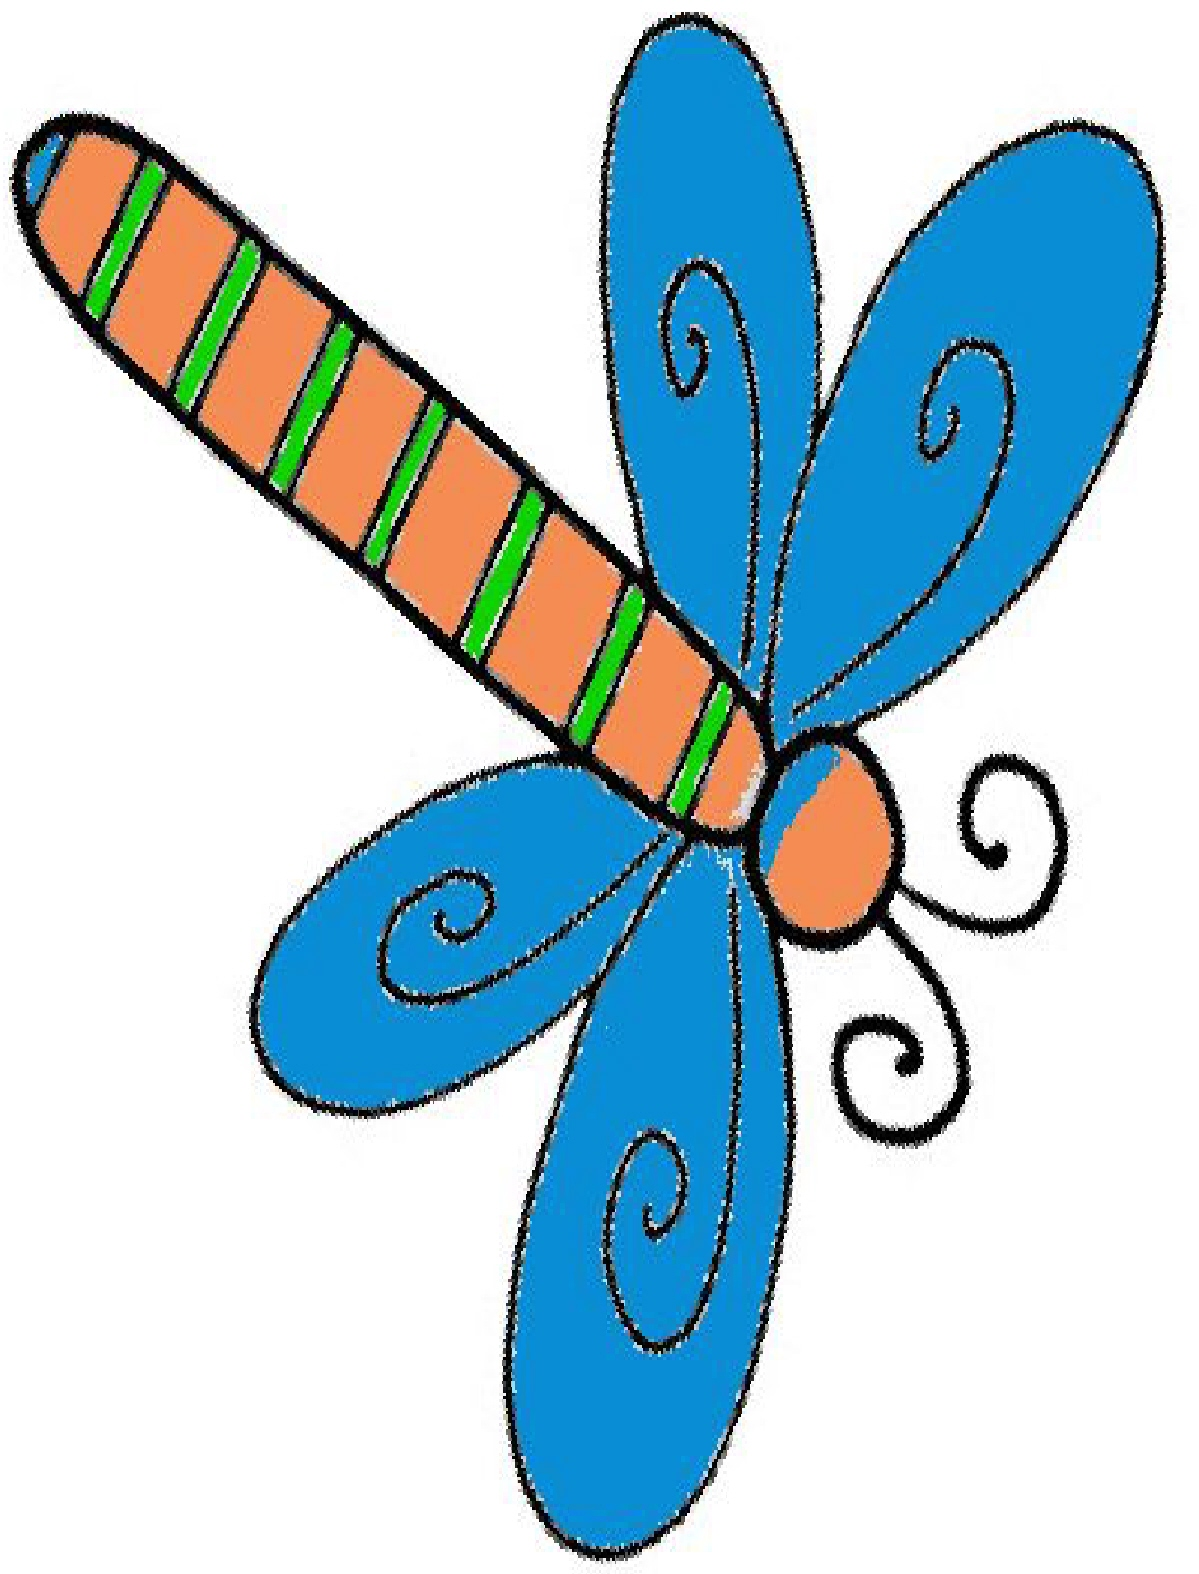 firefly clipart at getdrawings com free for personal use firefly rh getdrawings com